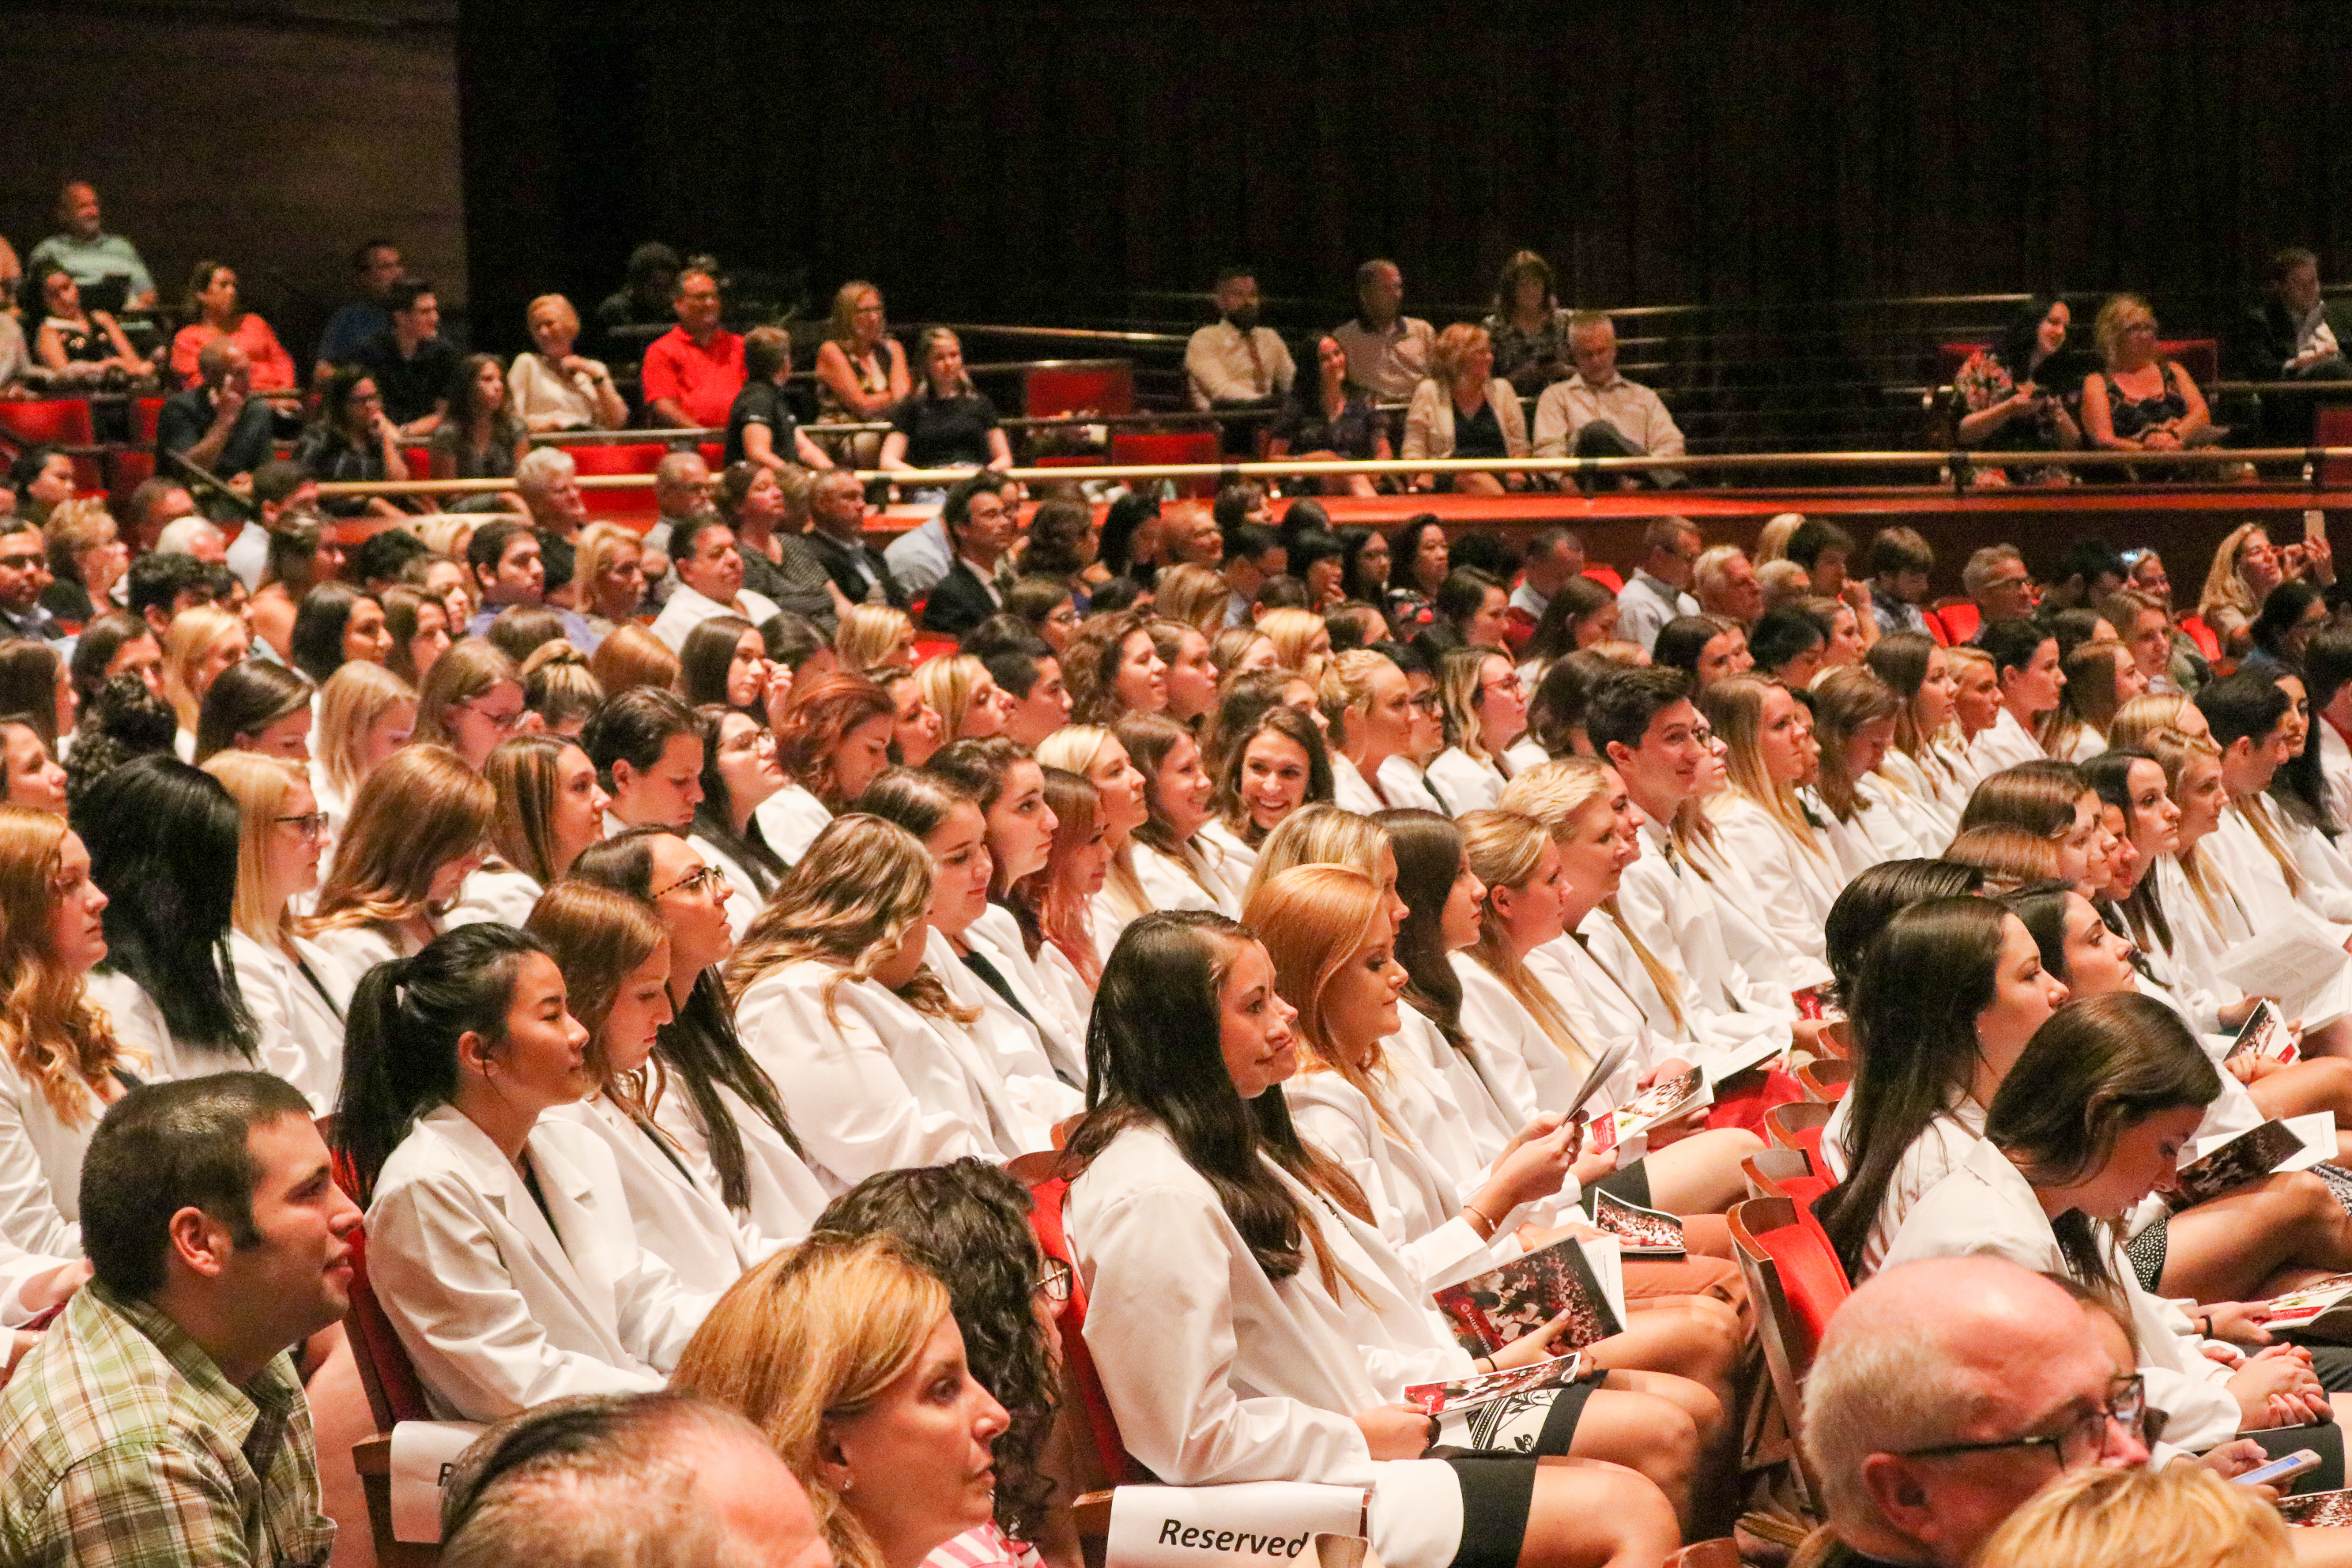 Students in White Coats